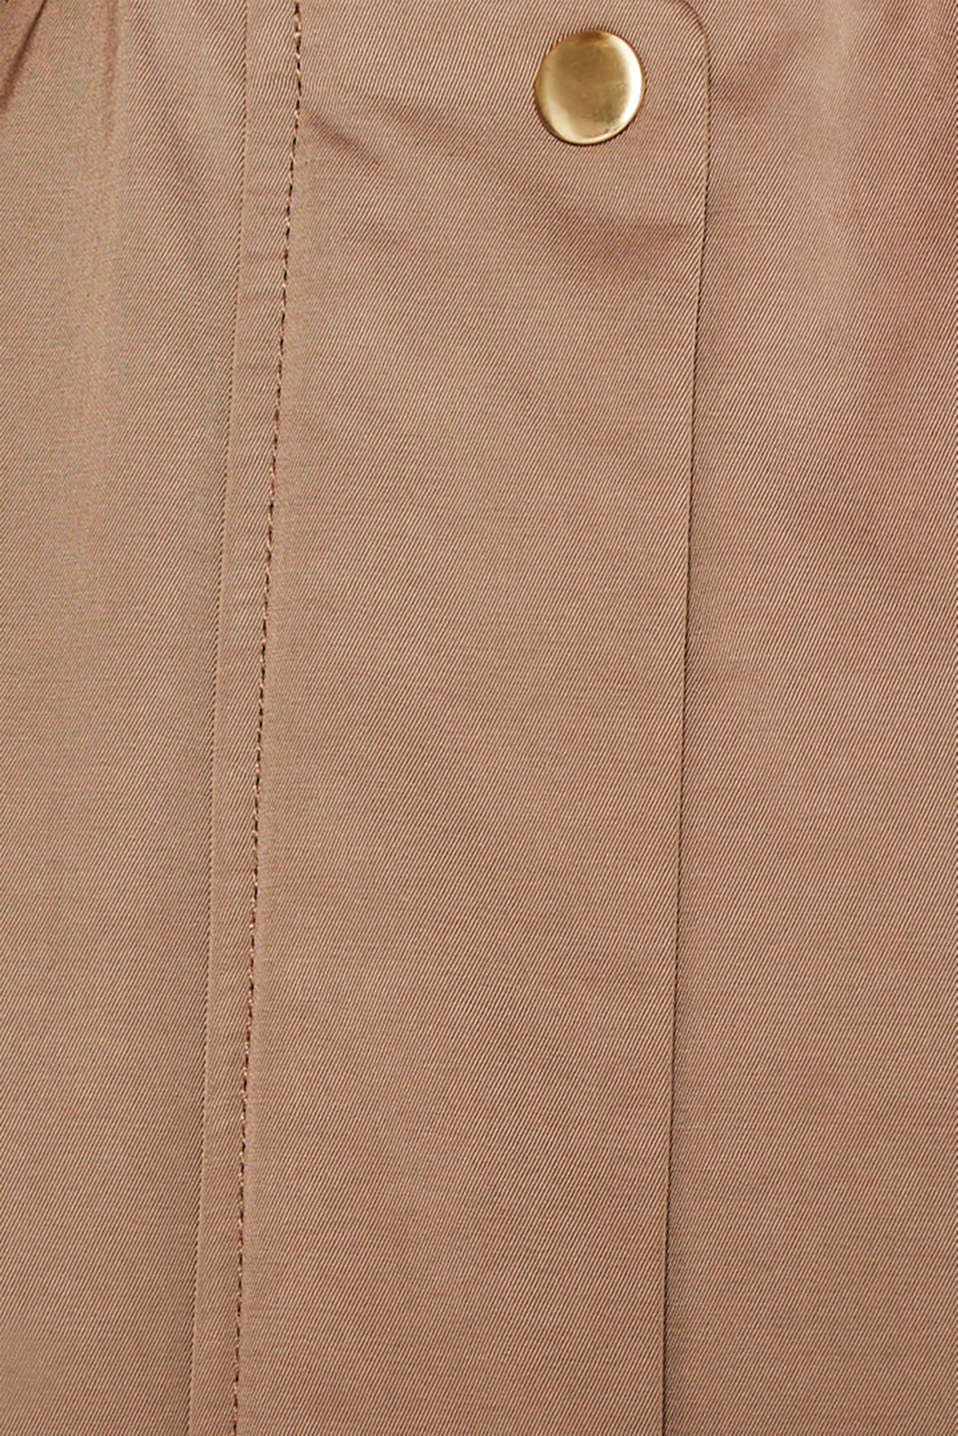 Coats woven, BROWN, detail image number 4